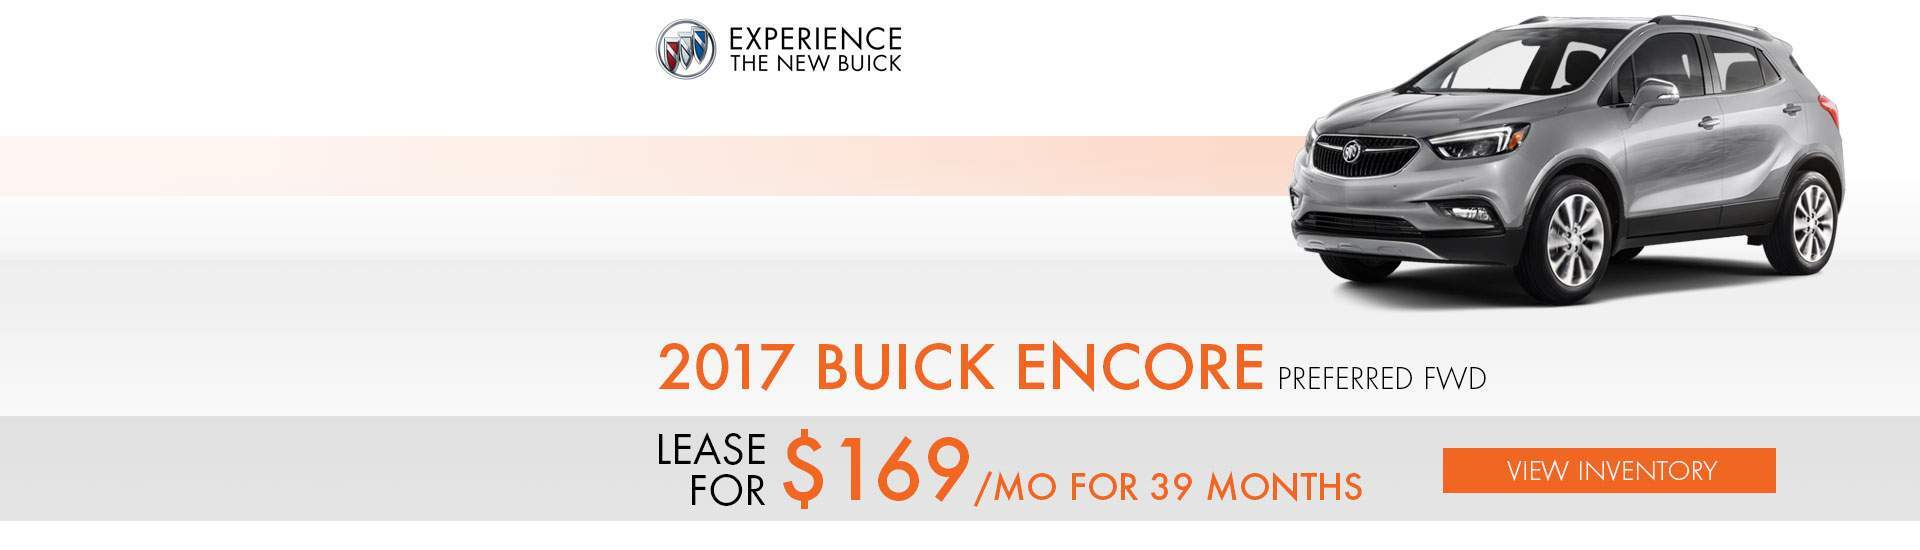 October 2017 Buick Encore Preferred Slide